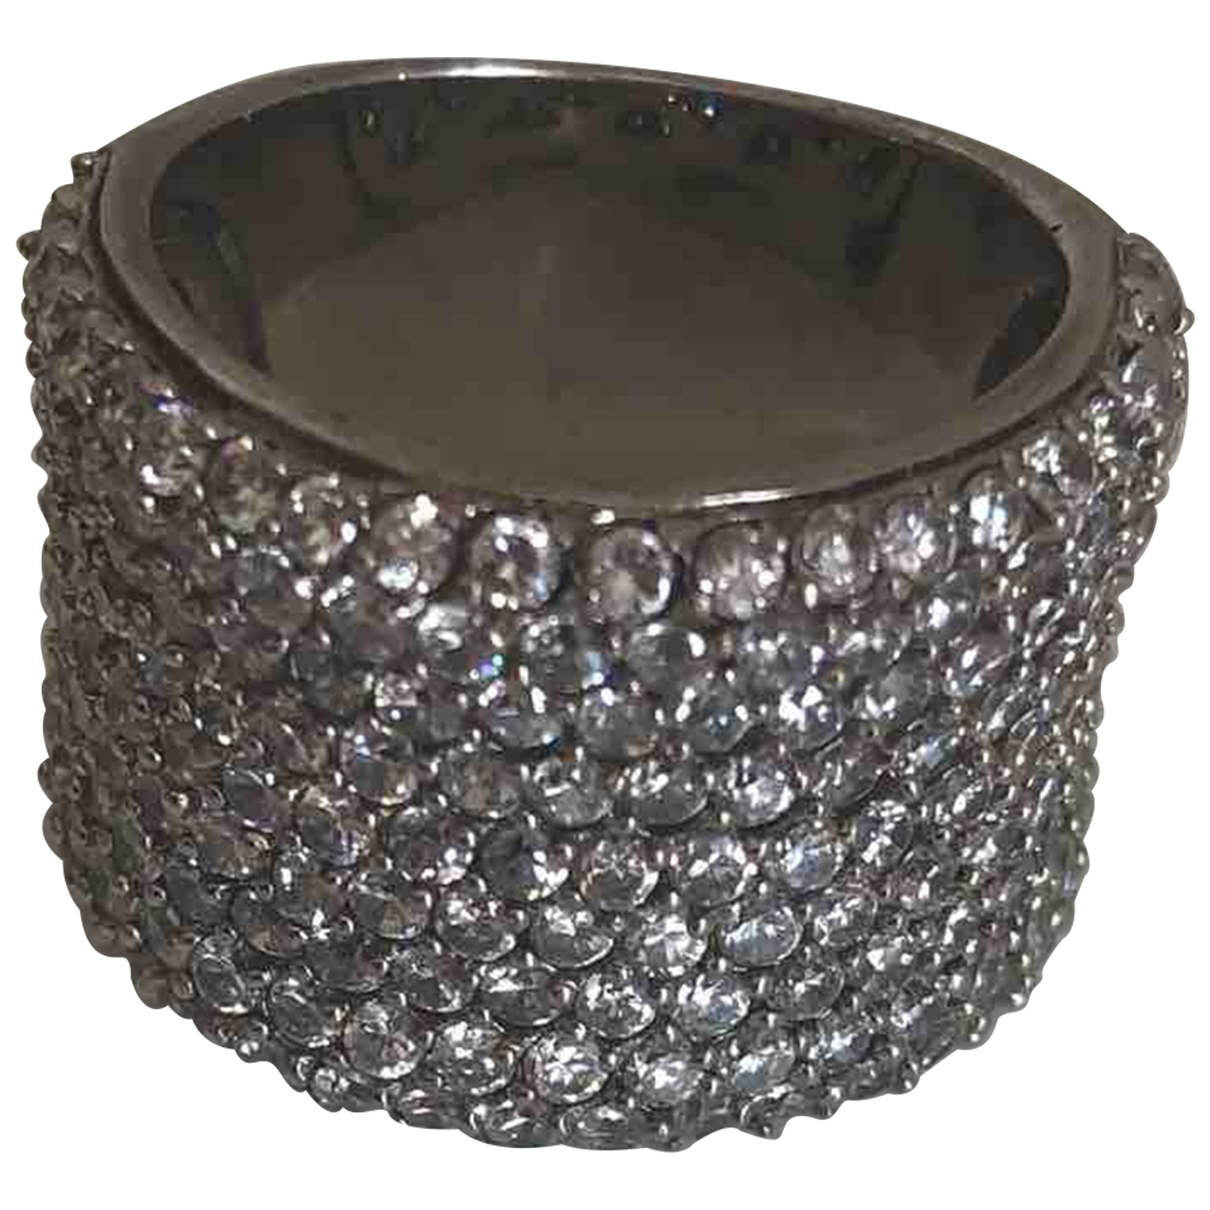 Non Signe / Unsigned \N Ring in  Silber Metall